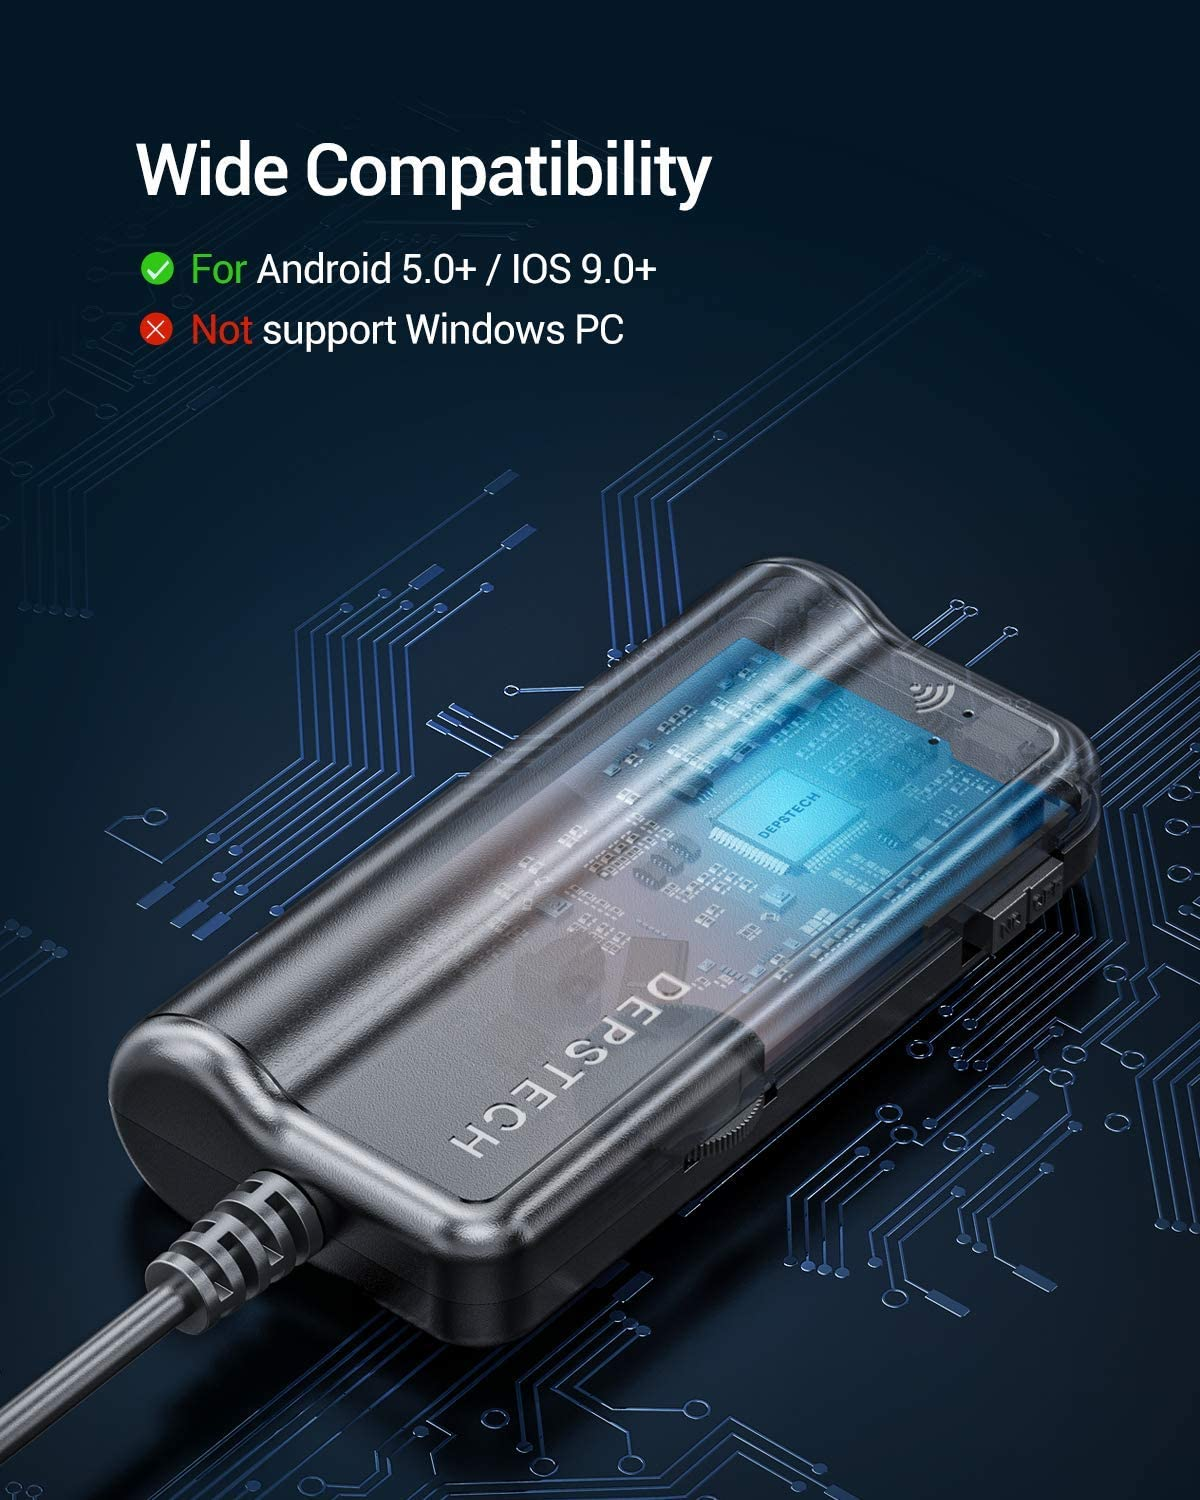 Wireless Endoscope Camera 16.5FT 1080P HD Semi-Rigid Snake Camera for iPhone Tablet DEPSTECH 5.5mm WiFi Borescope with 2200 mAh Battery Sewer Drain Pipeline Inspection Camera Android